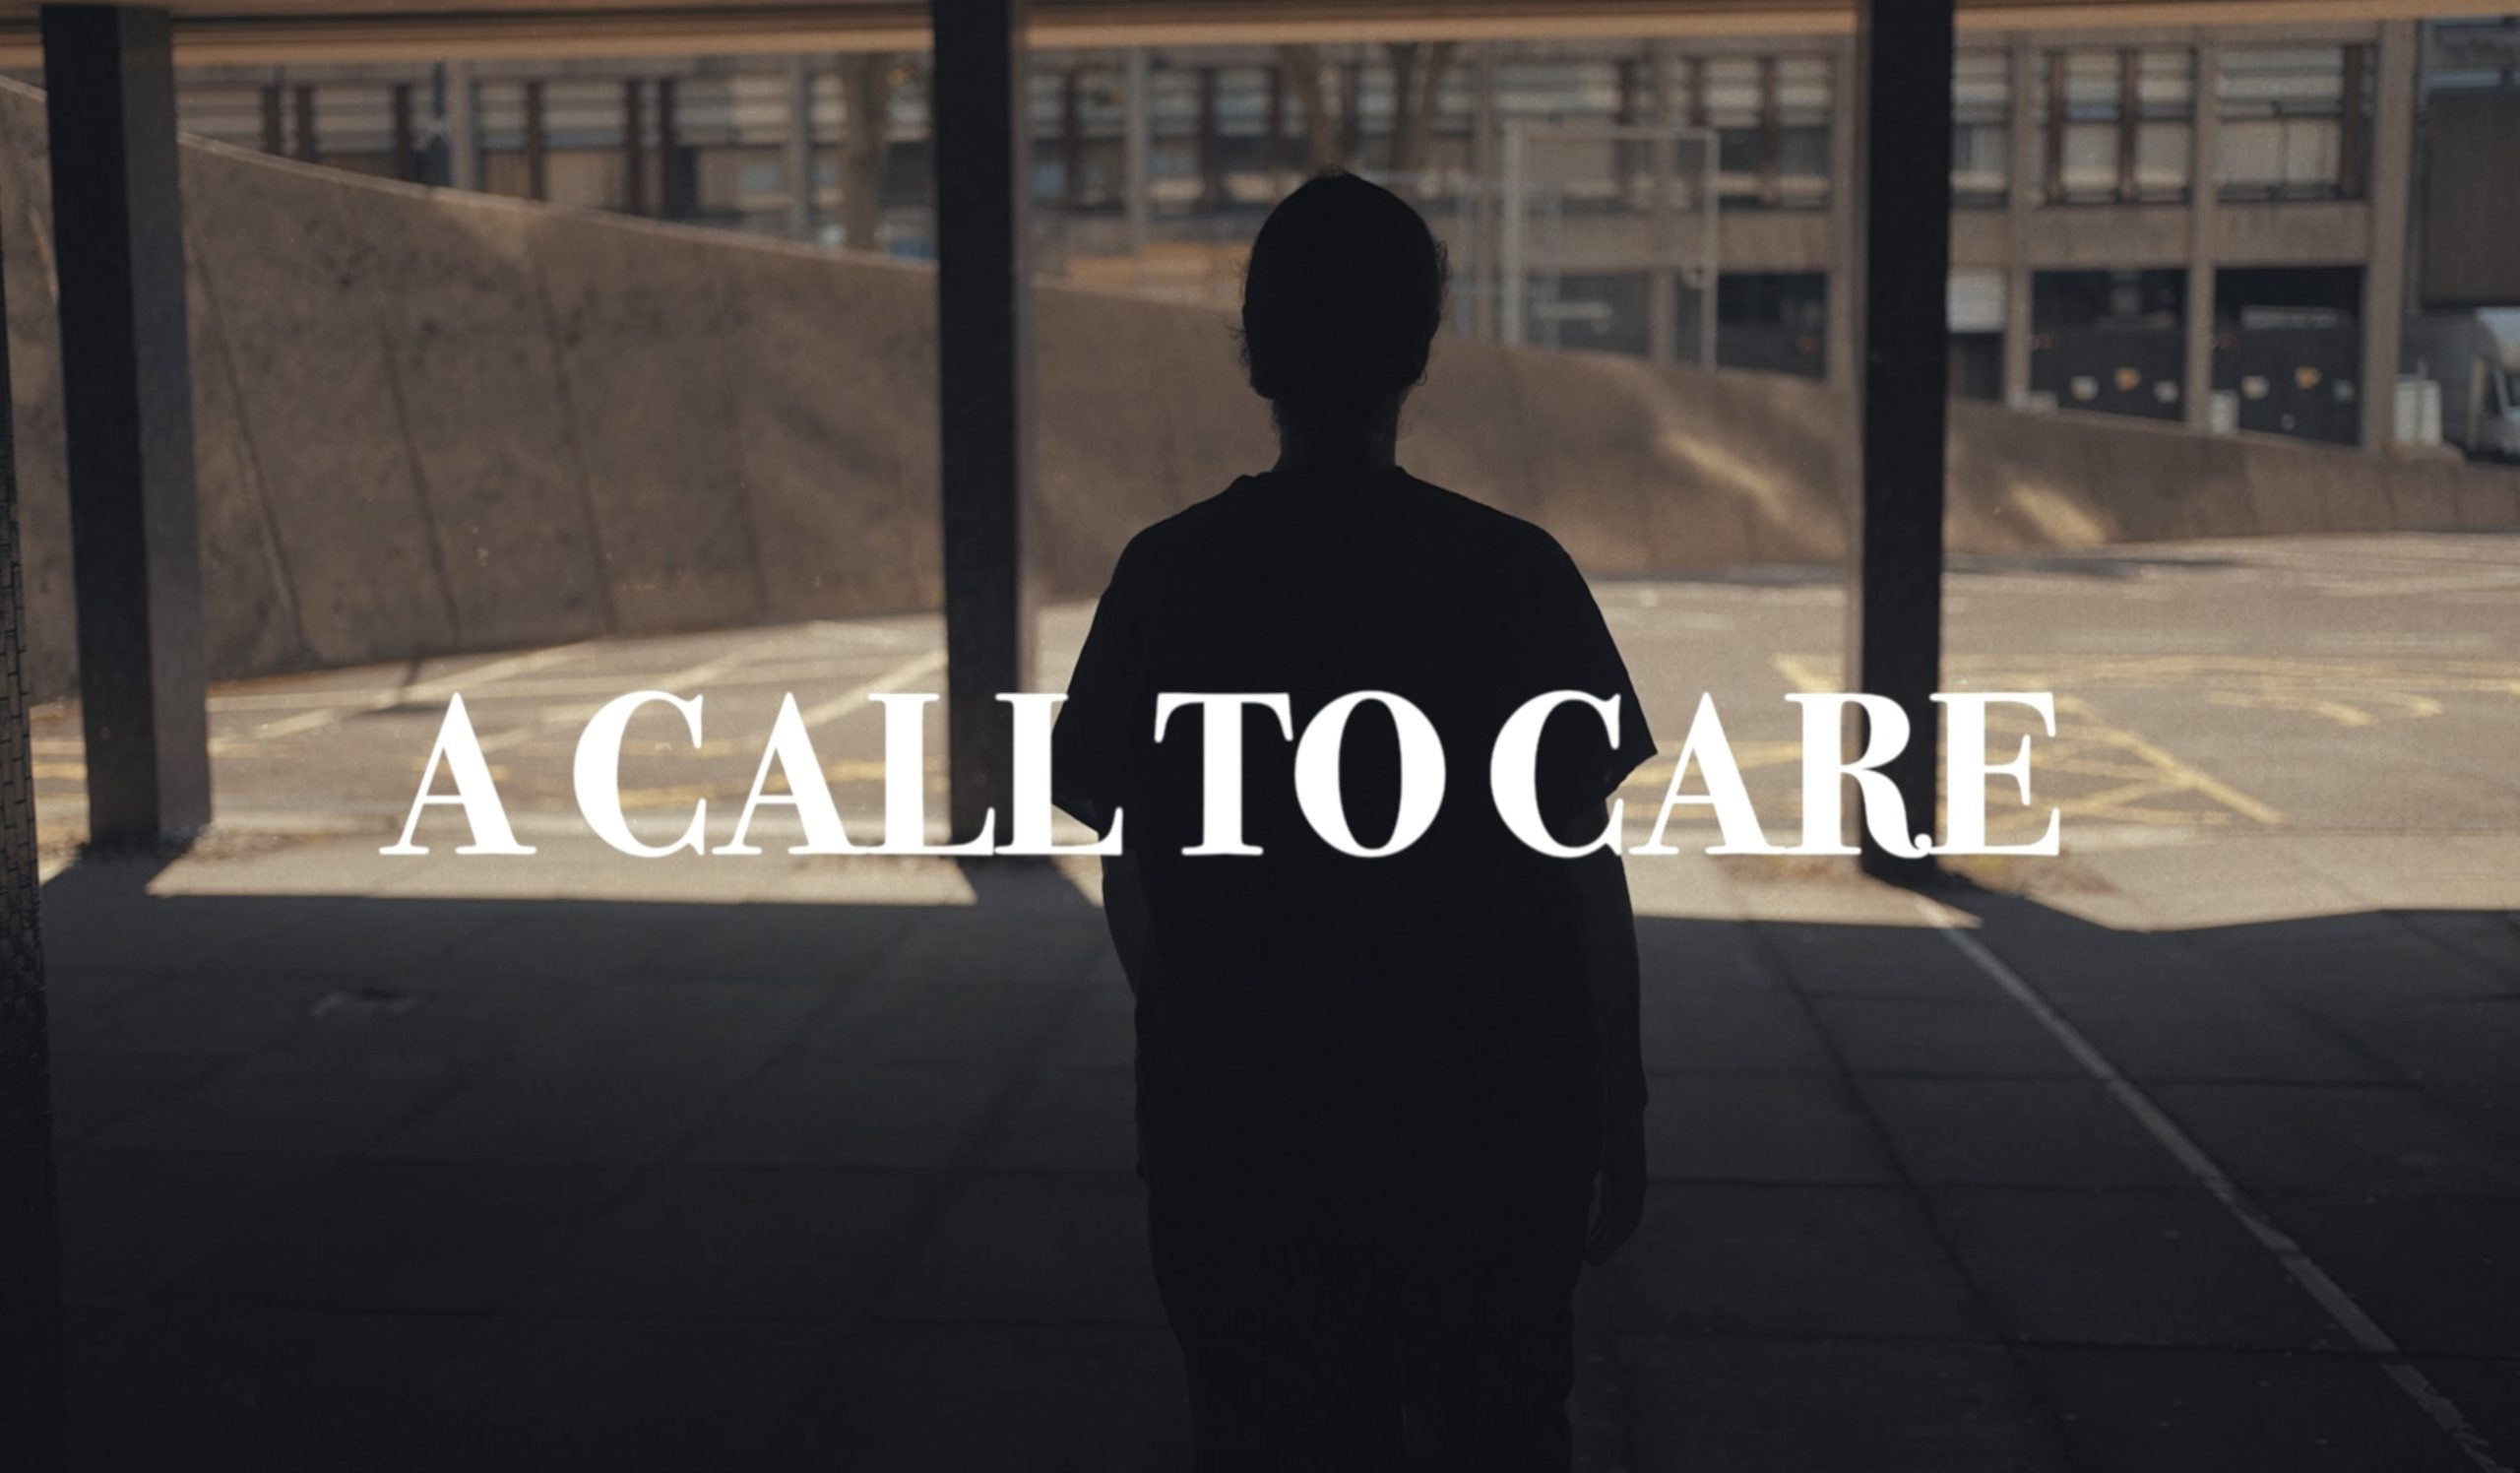 Read more about the article Making A Call to Care